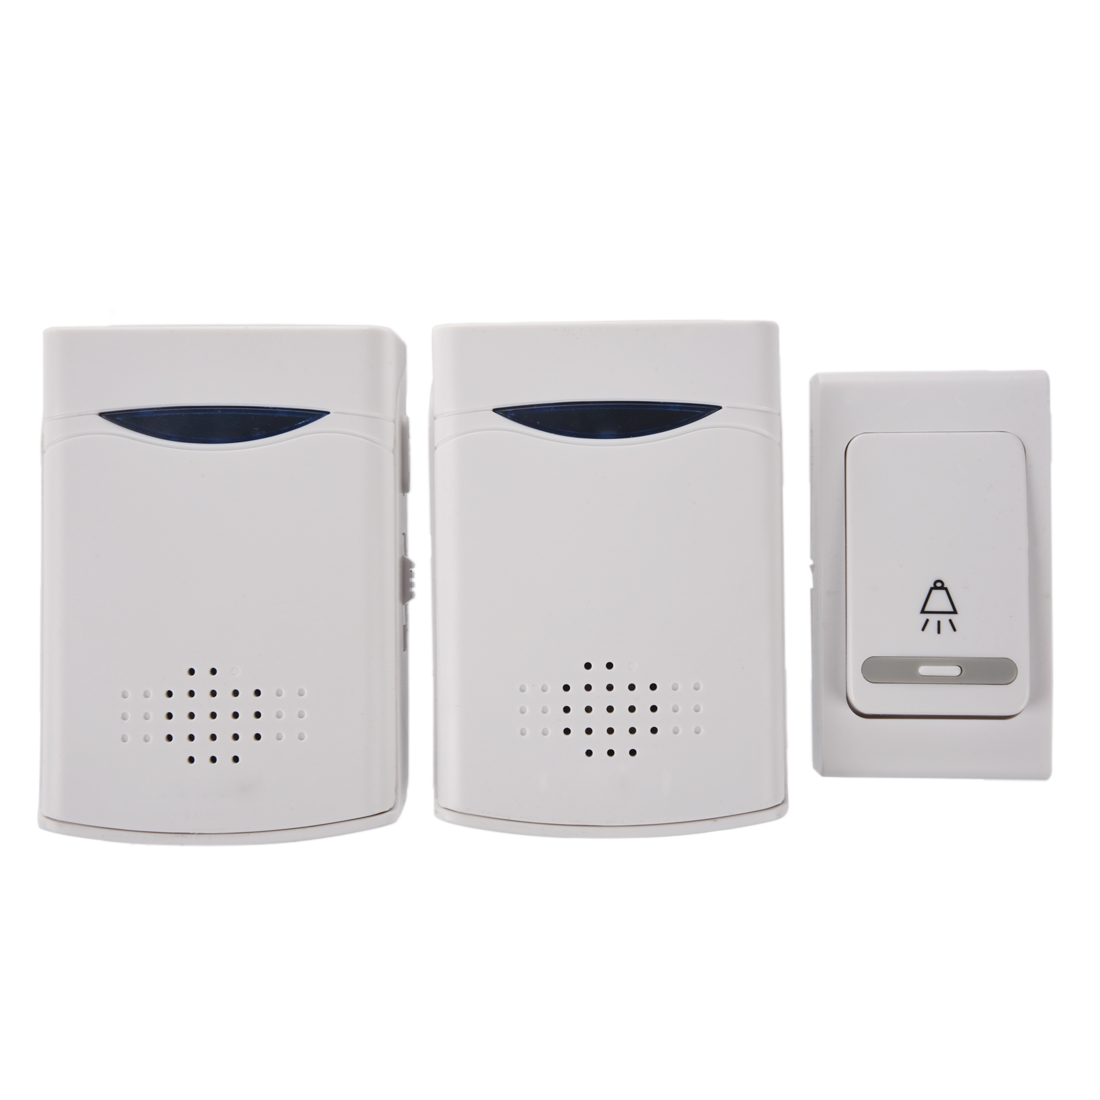 Chime Bell Doorbell Wireless Door Electric 80m 38 Melodies House Wiring A Easy To Install No Required Remote Button Size About 303 X 169 067 374 256 118 Receiver Voltage 3v Dc